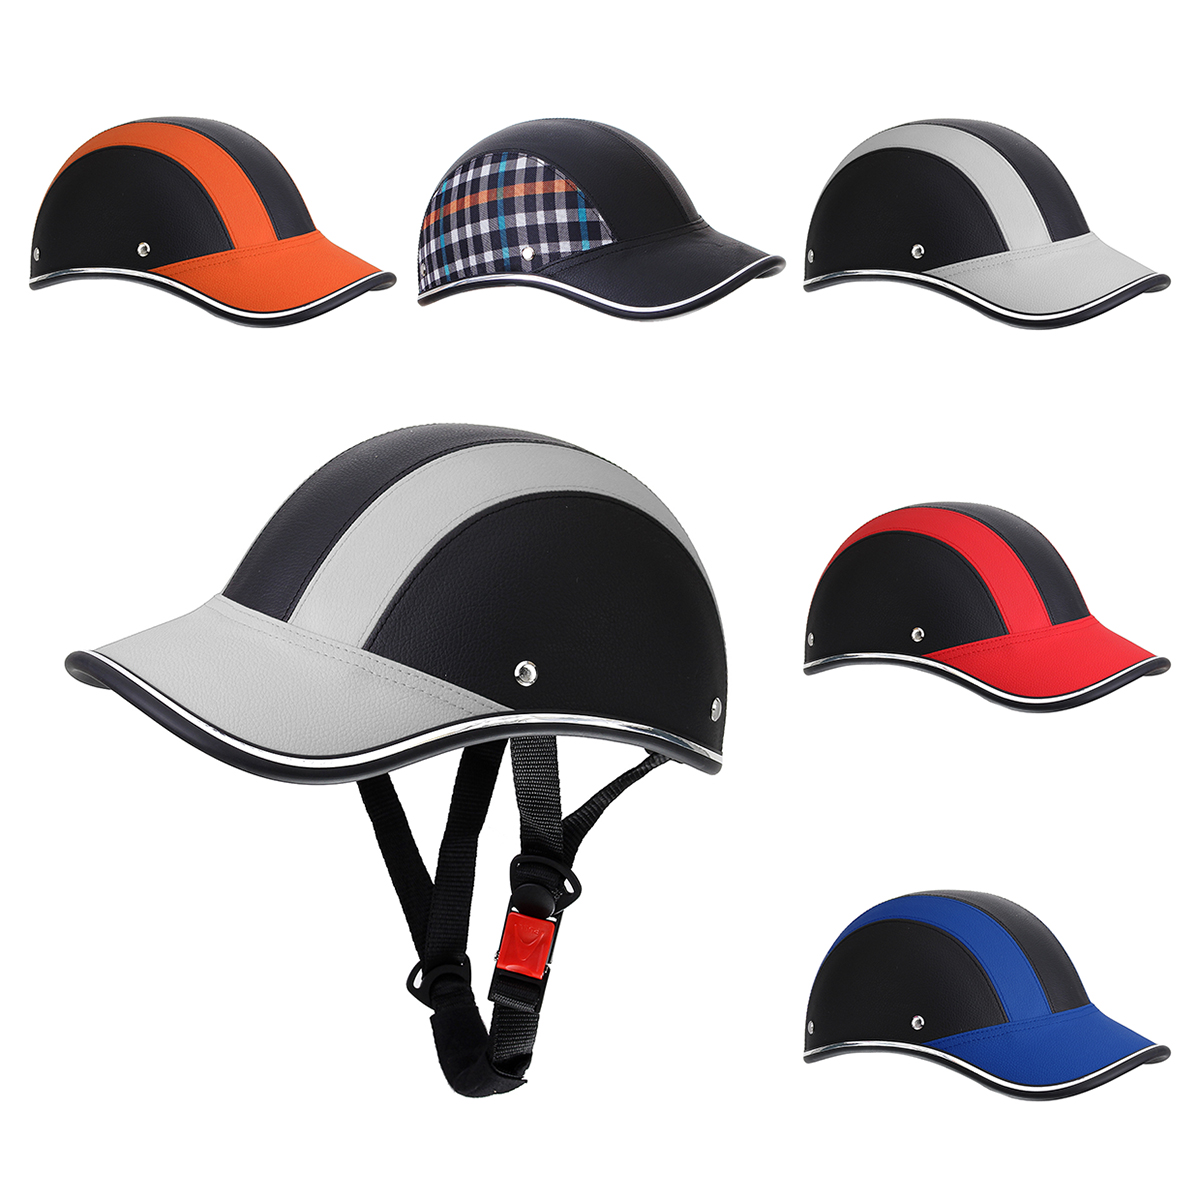 Motorcycle PU Leather Helmet Half Open Face With Chopper Cruiser Visor